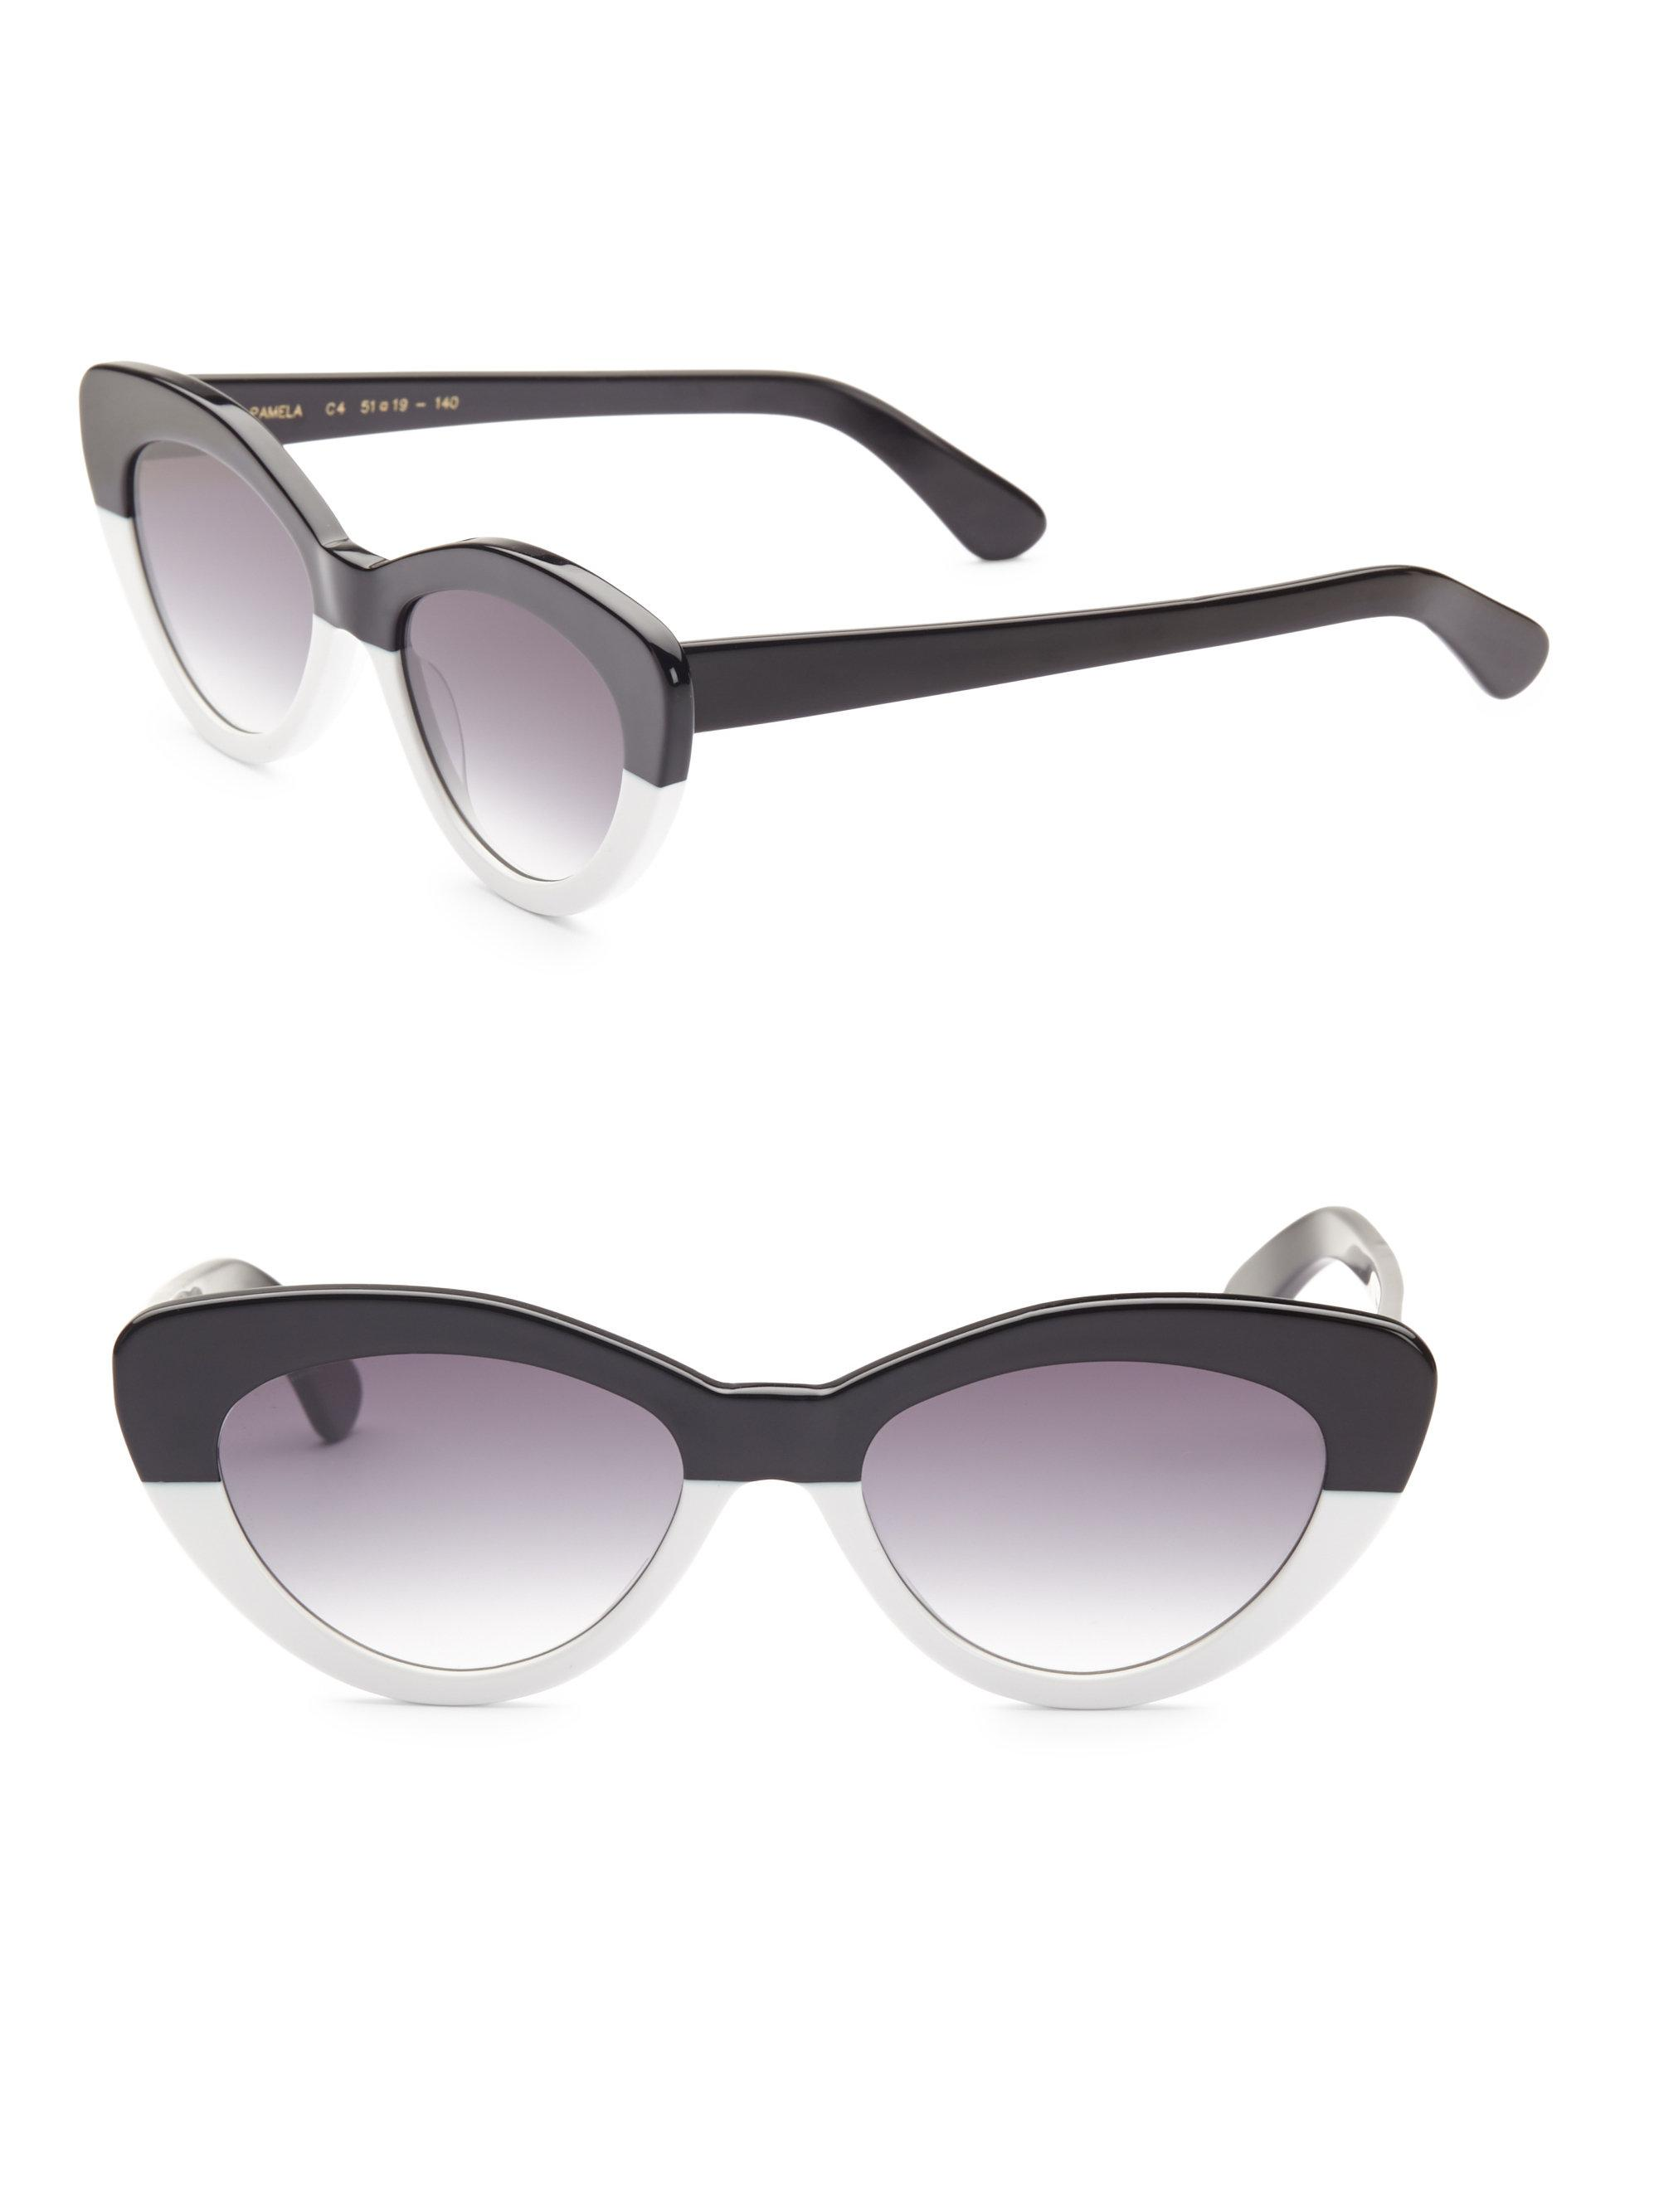 Pamela Cat-eye Acetate Sunglasses - White Illesteva uqtUGNwNn